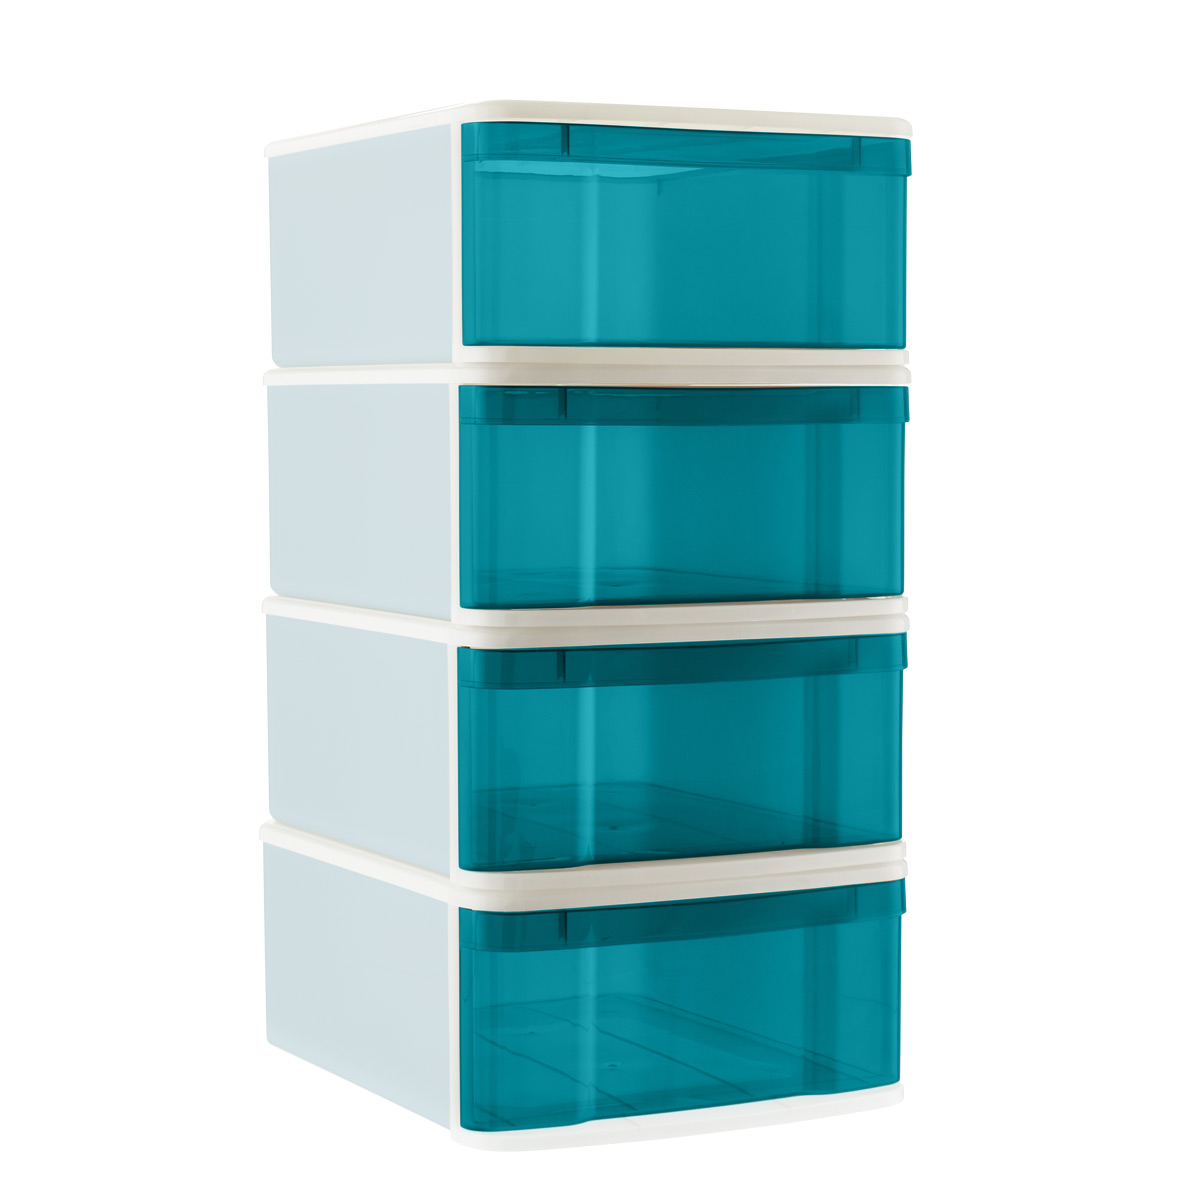 Peacock Large Tint Stackable Storage Drawer Case of 4